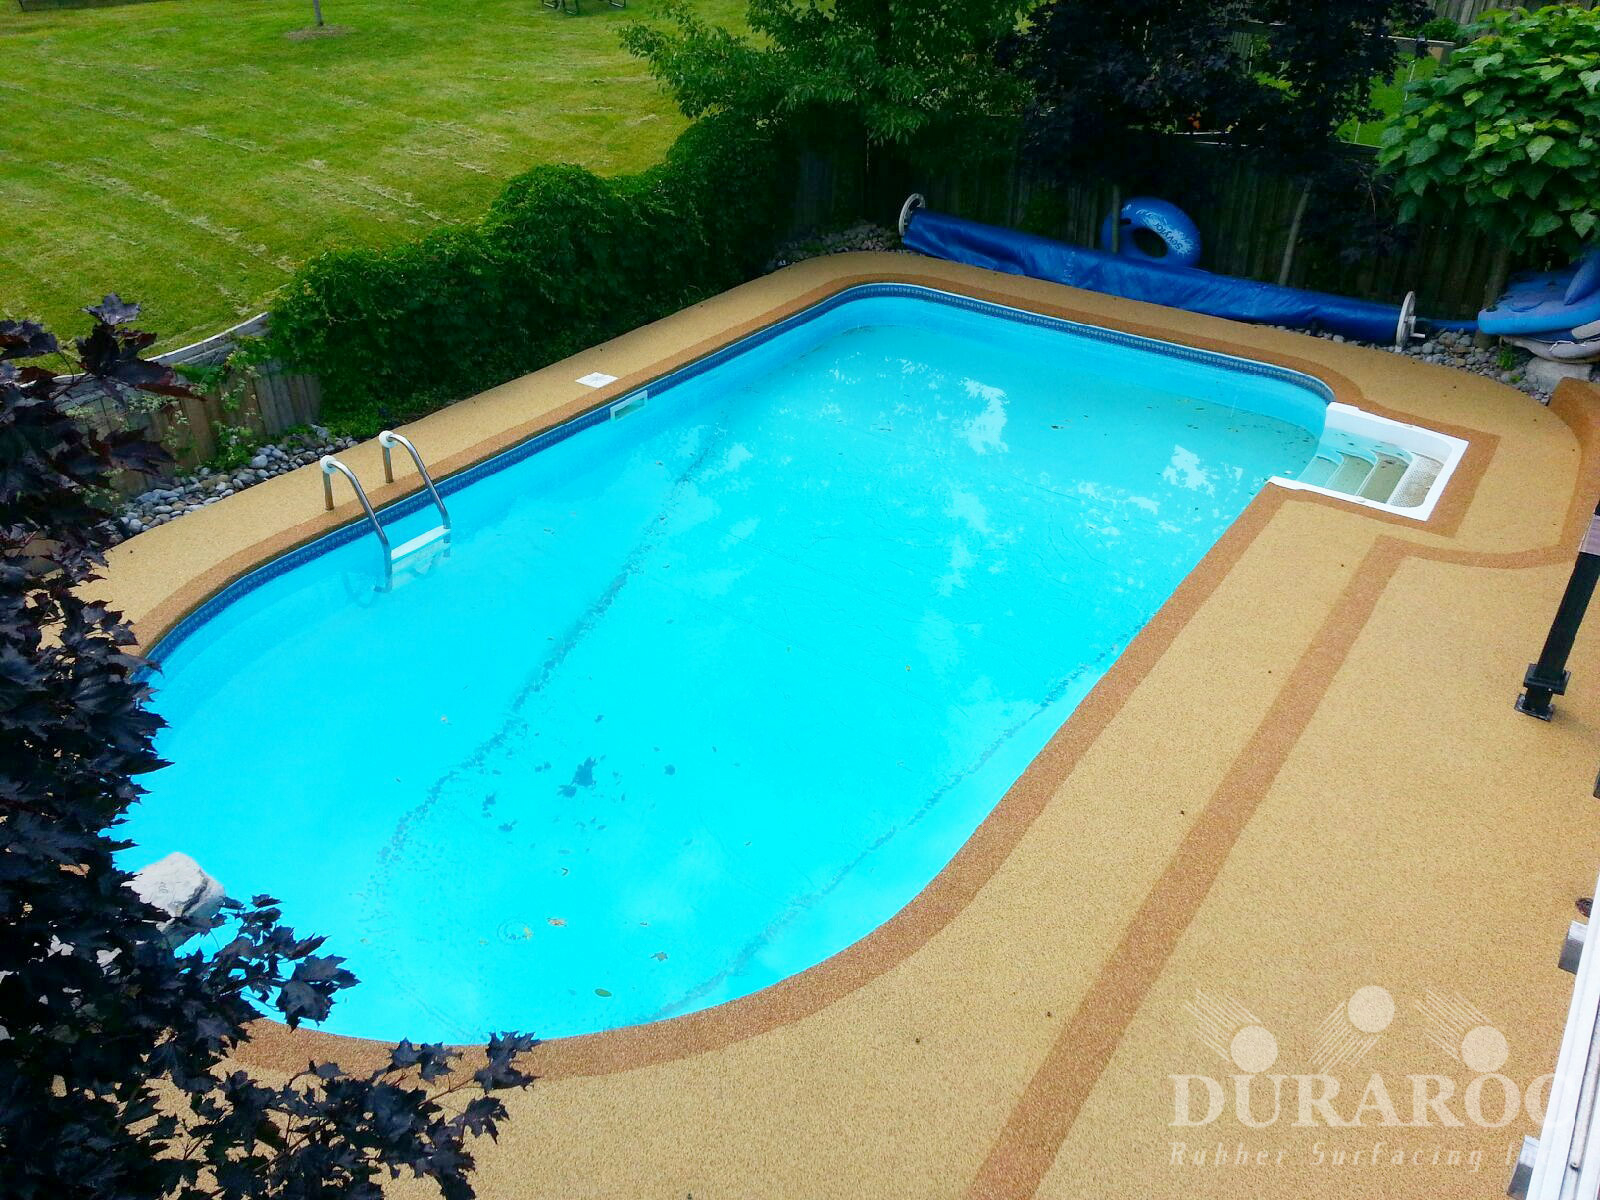 Outside pool with Duraroc rubber surfacing